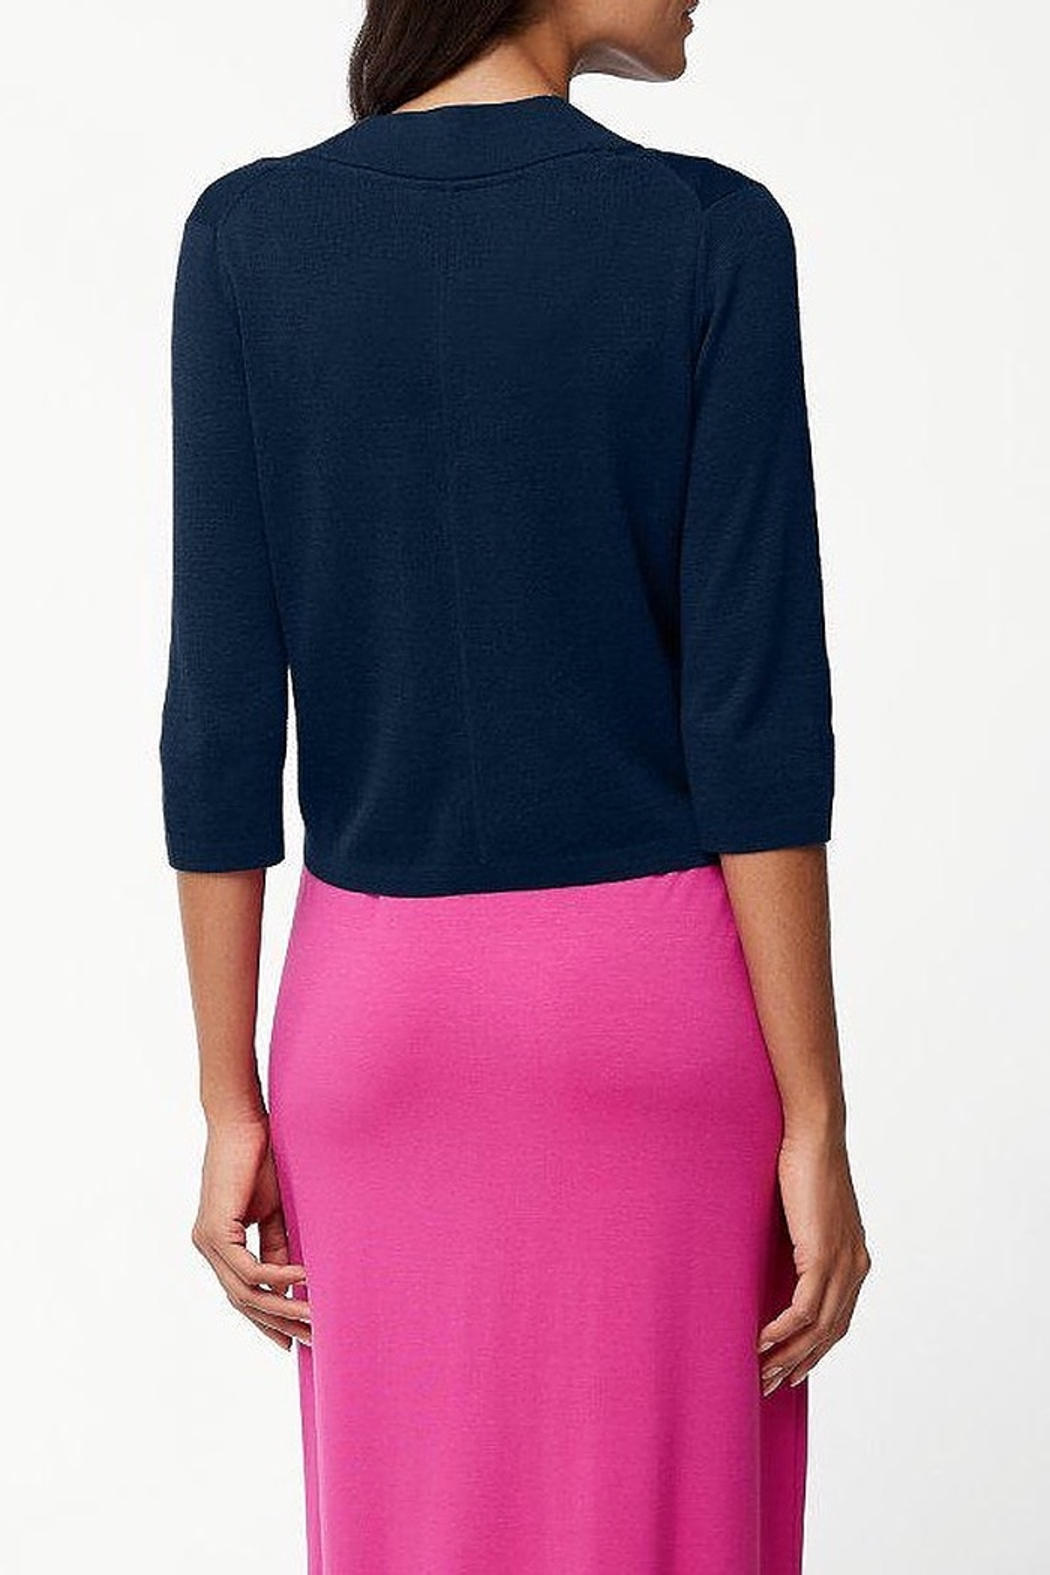 Tommy Bahama Pickford Cropped Dress Cardigan - Front Full Image